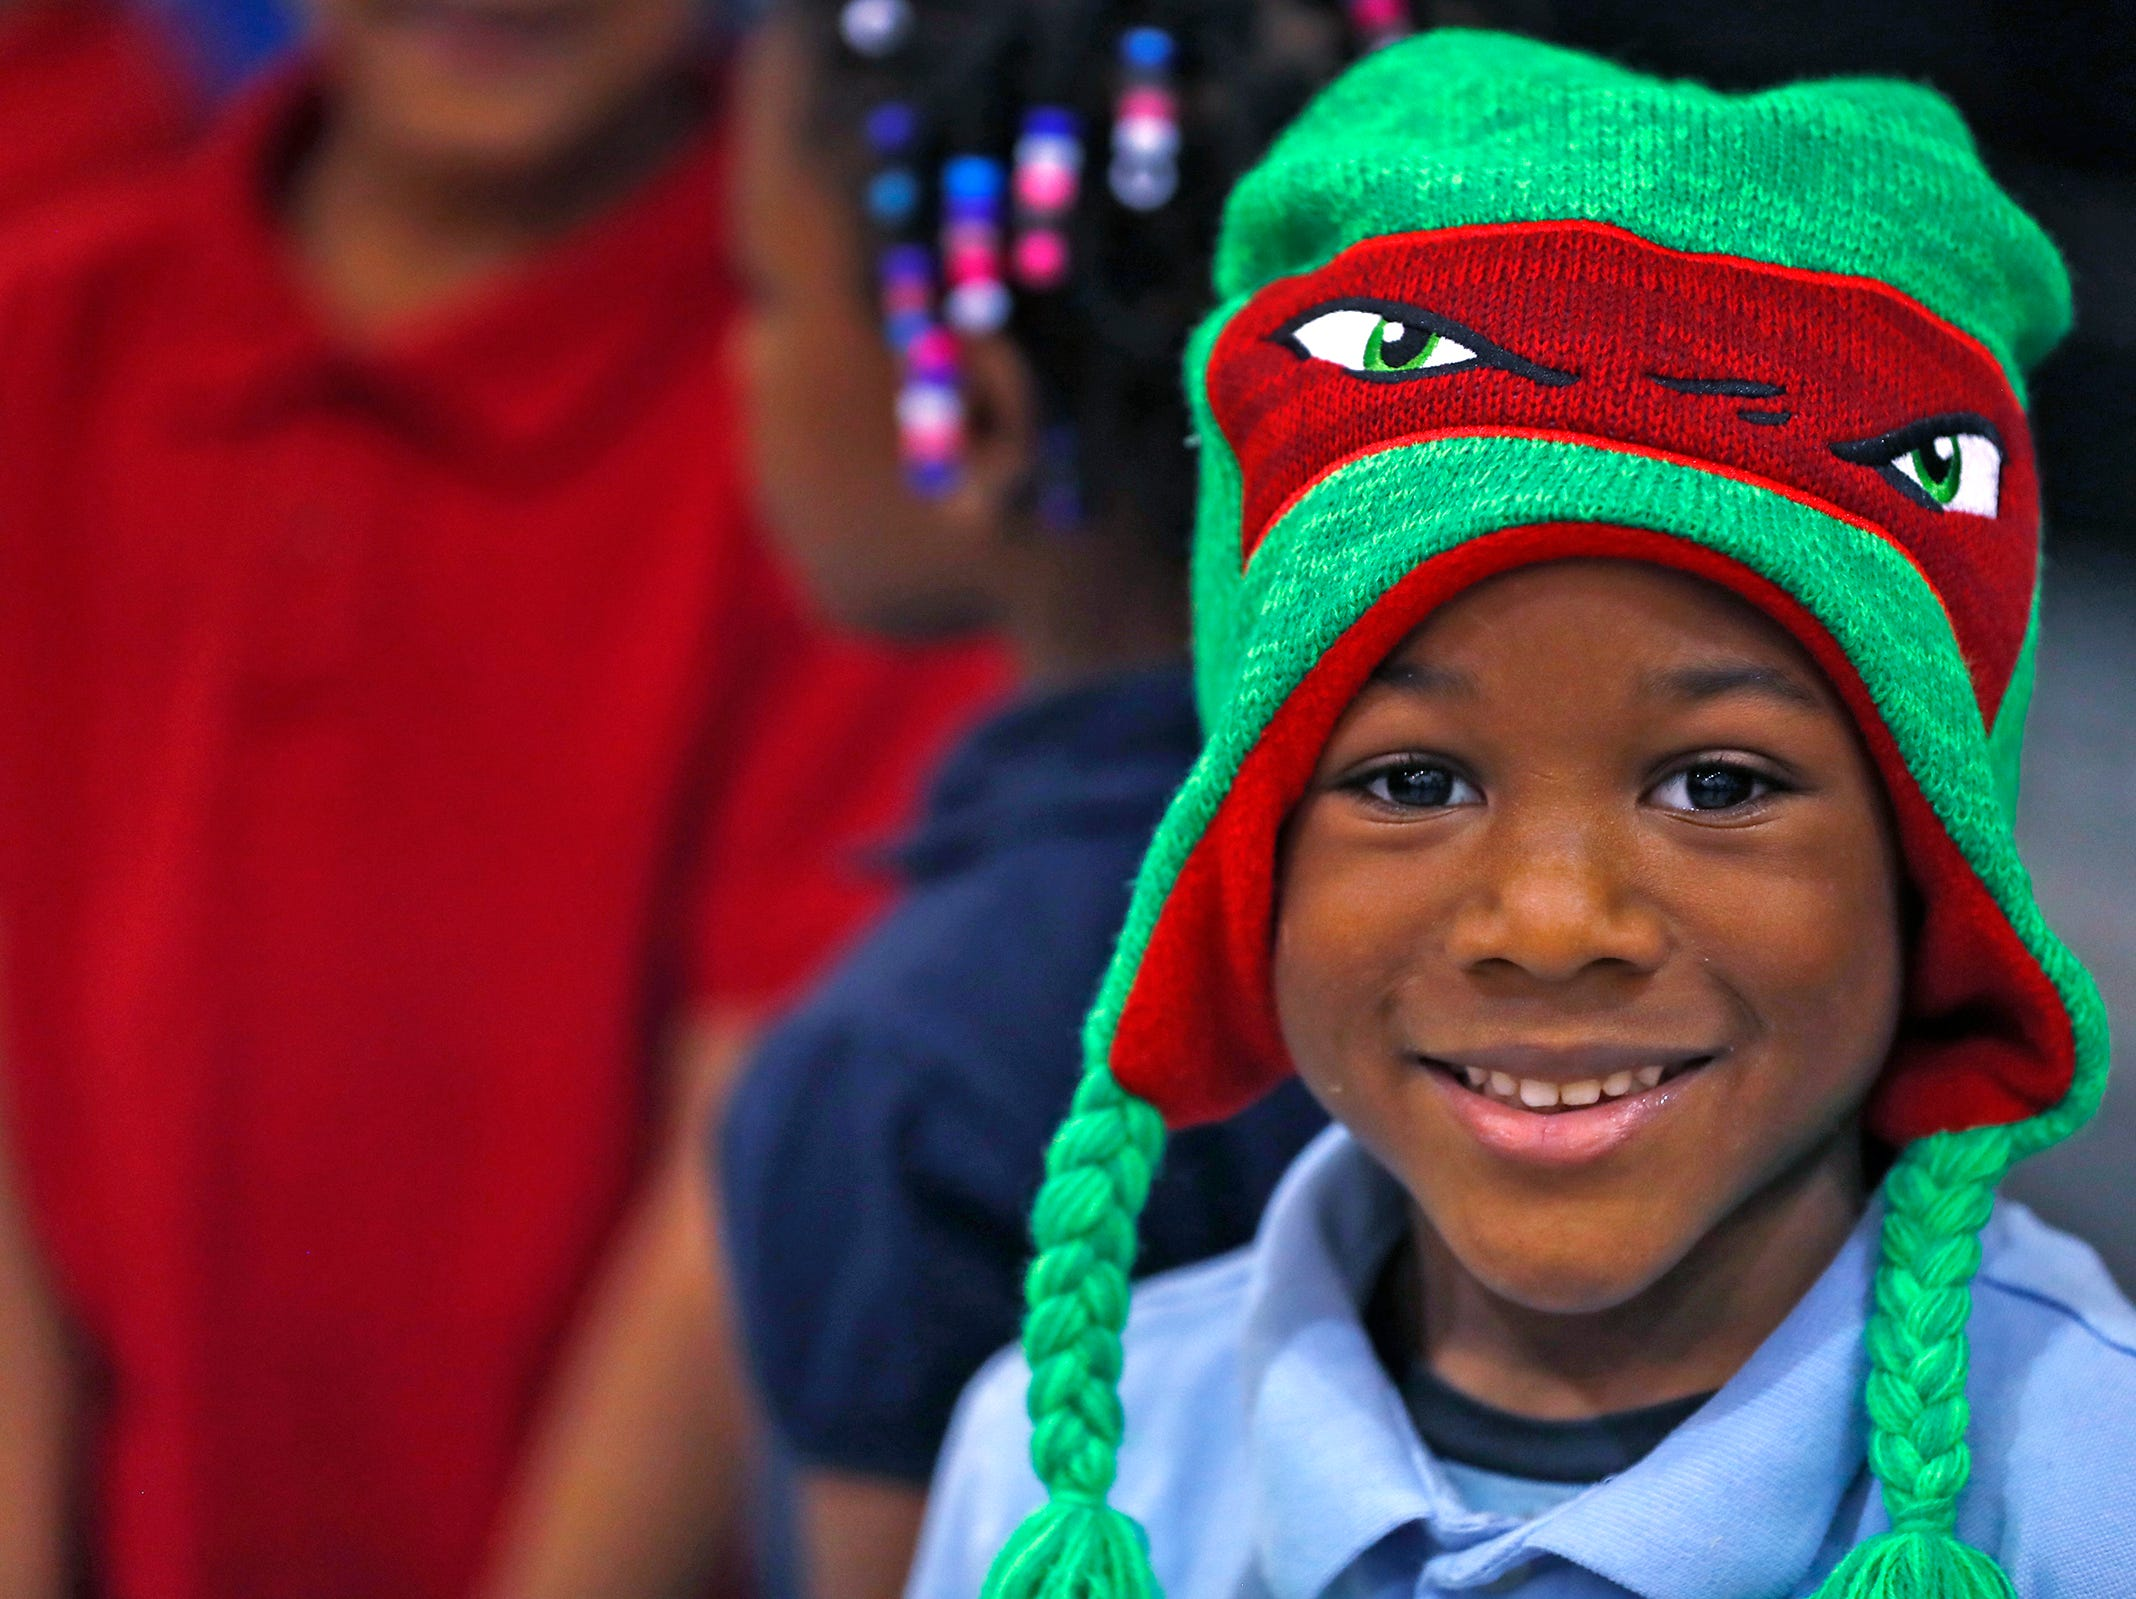 Josiah Beard smiles with his new hat he received at Brookside School 54, Monday, Dec. 3, 2018.  Colts players and staff joined as LIDS Sports and its parent company Genesco fit and gave new shoes, socks, hats, and snacks to students as part of the 13th annual Cold Feet, Warm Shoes event.